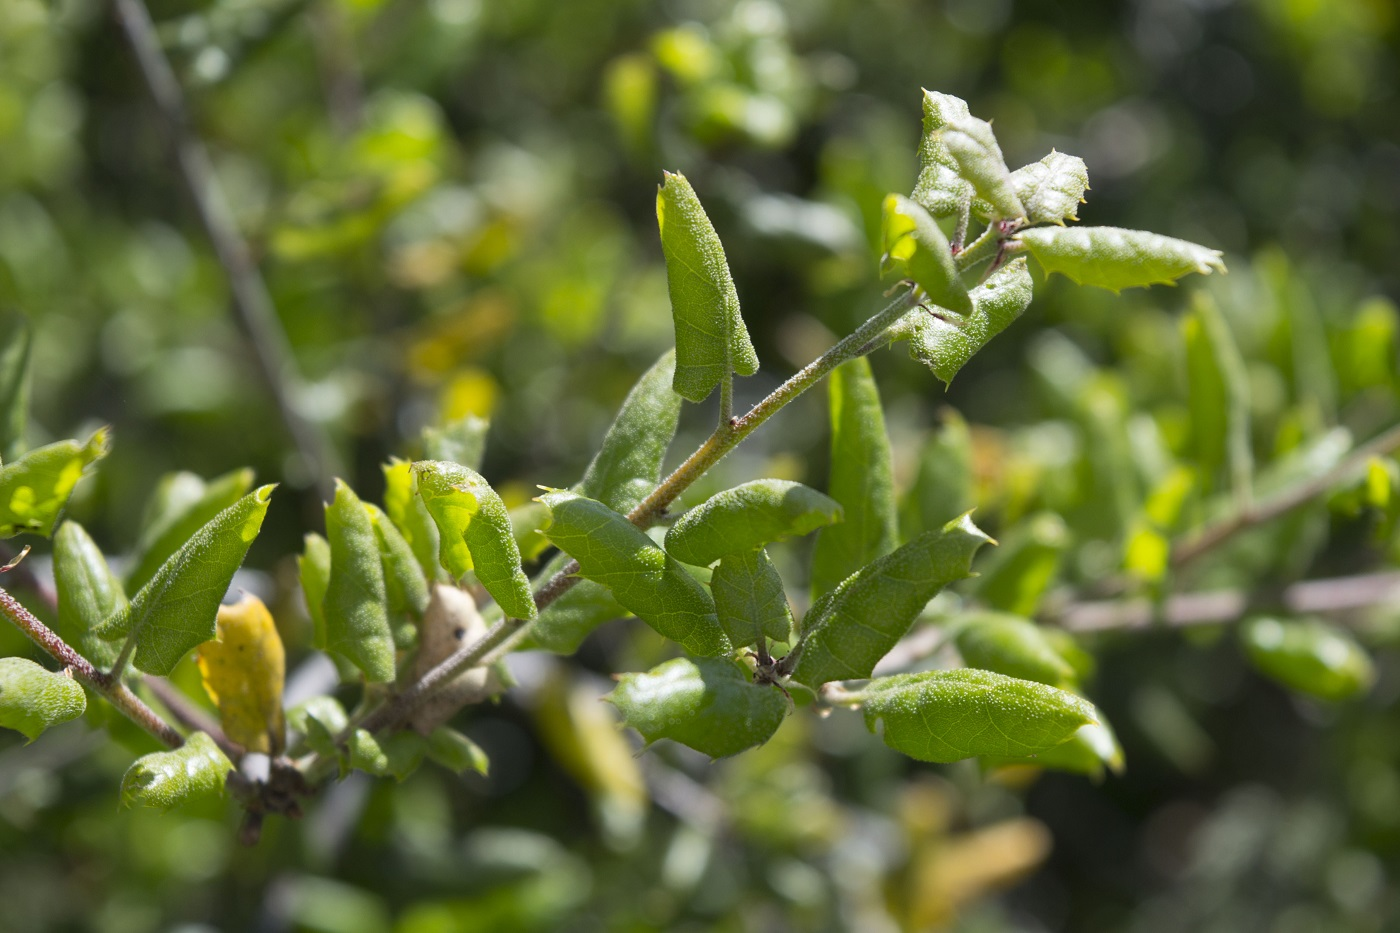 Pristine Coast Live Oak Is An Evergreen Tree Leaves That Shade Ground When Looking Native Plant Series Coast Live Oak Woodlands A Dense Which Is Layer Branches houzz-02 Live Oak Leaves